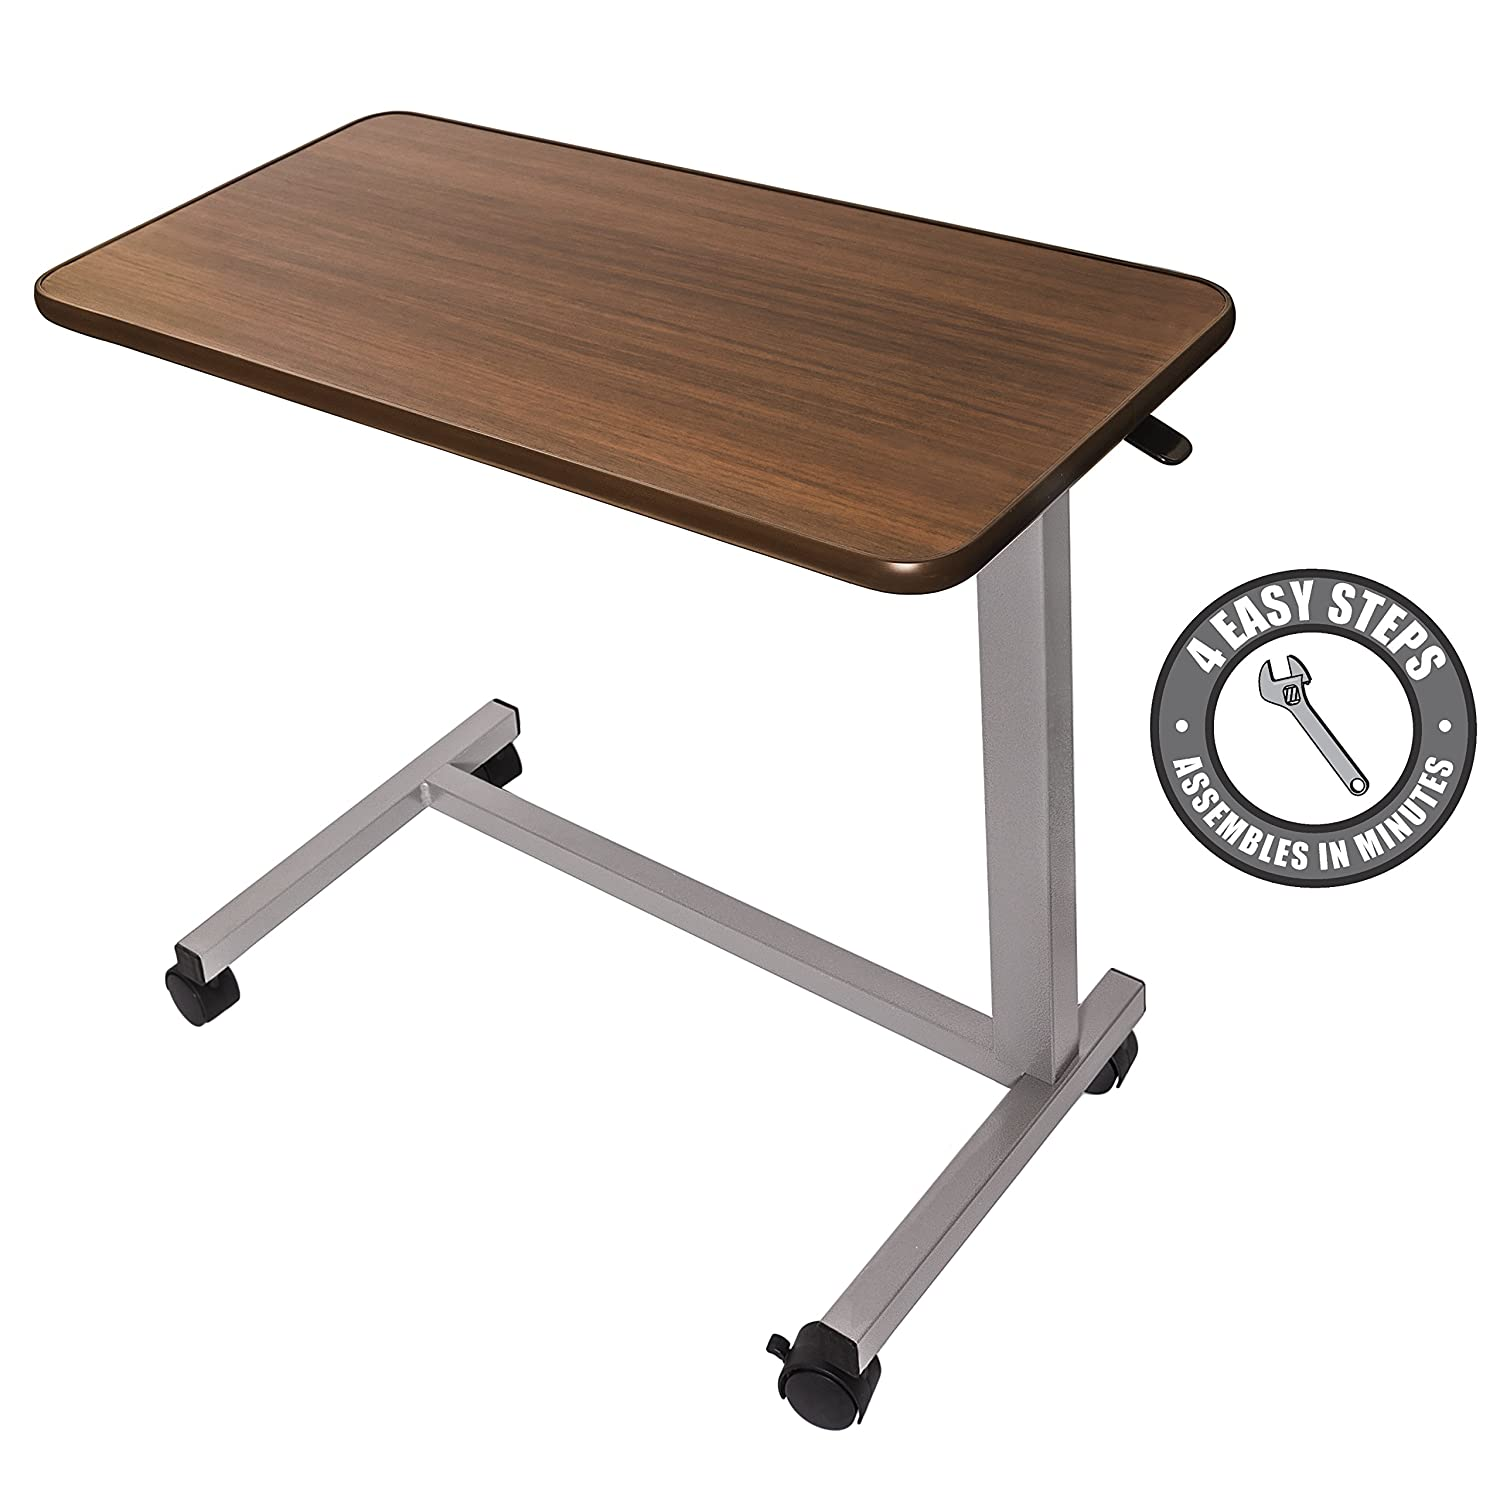 Diy overbed table - Eva Medical Adjustable Overbed Table With Wheels Hospital